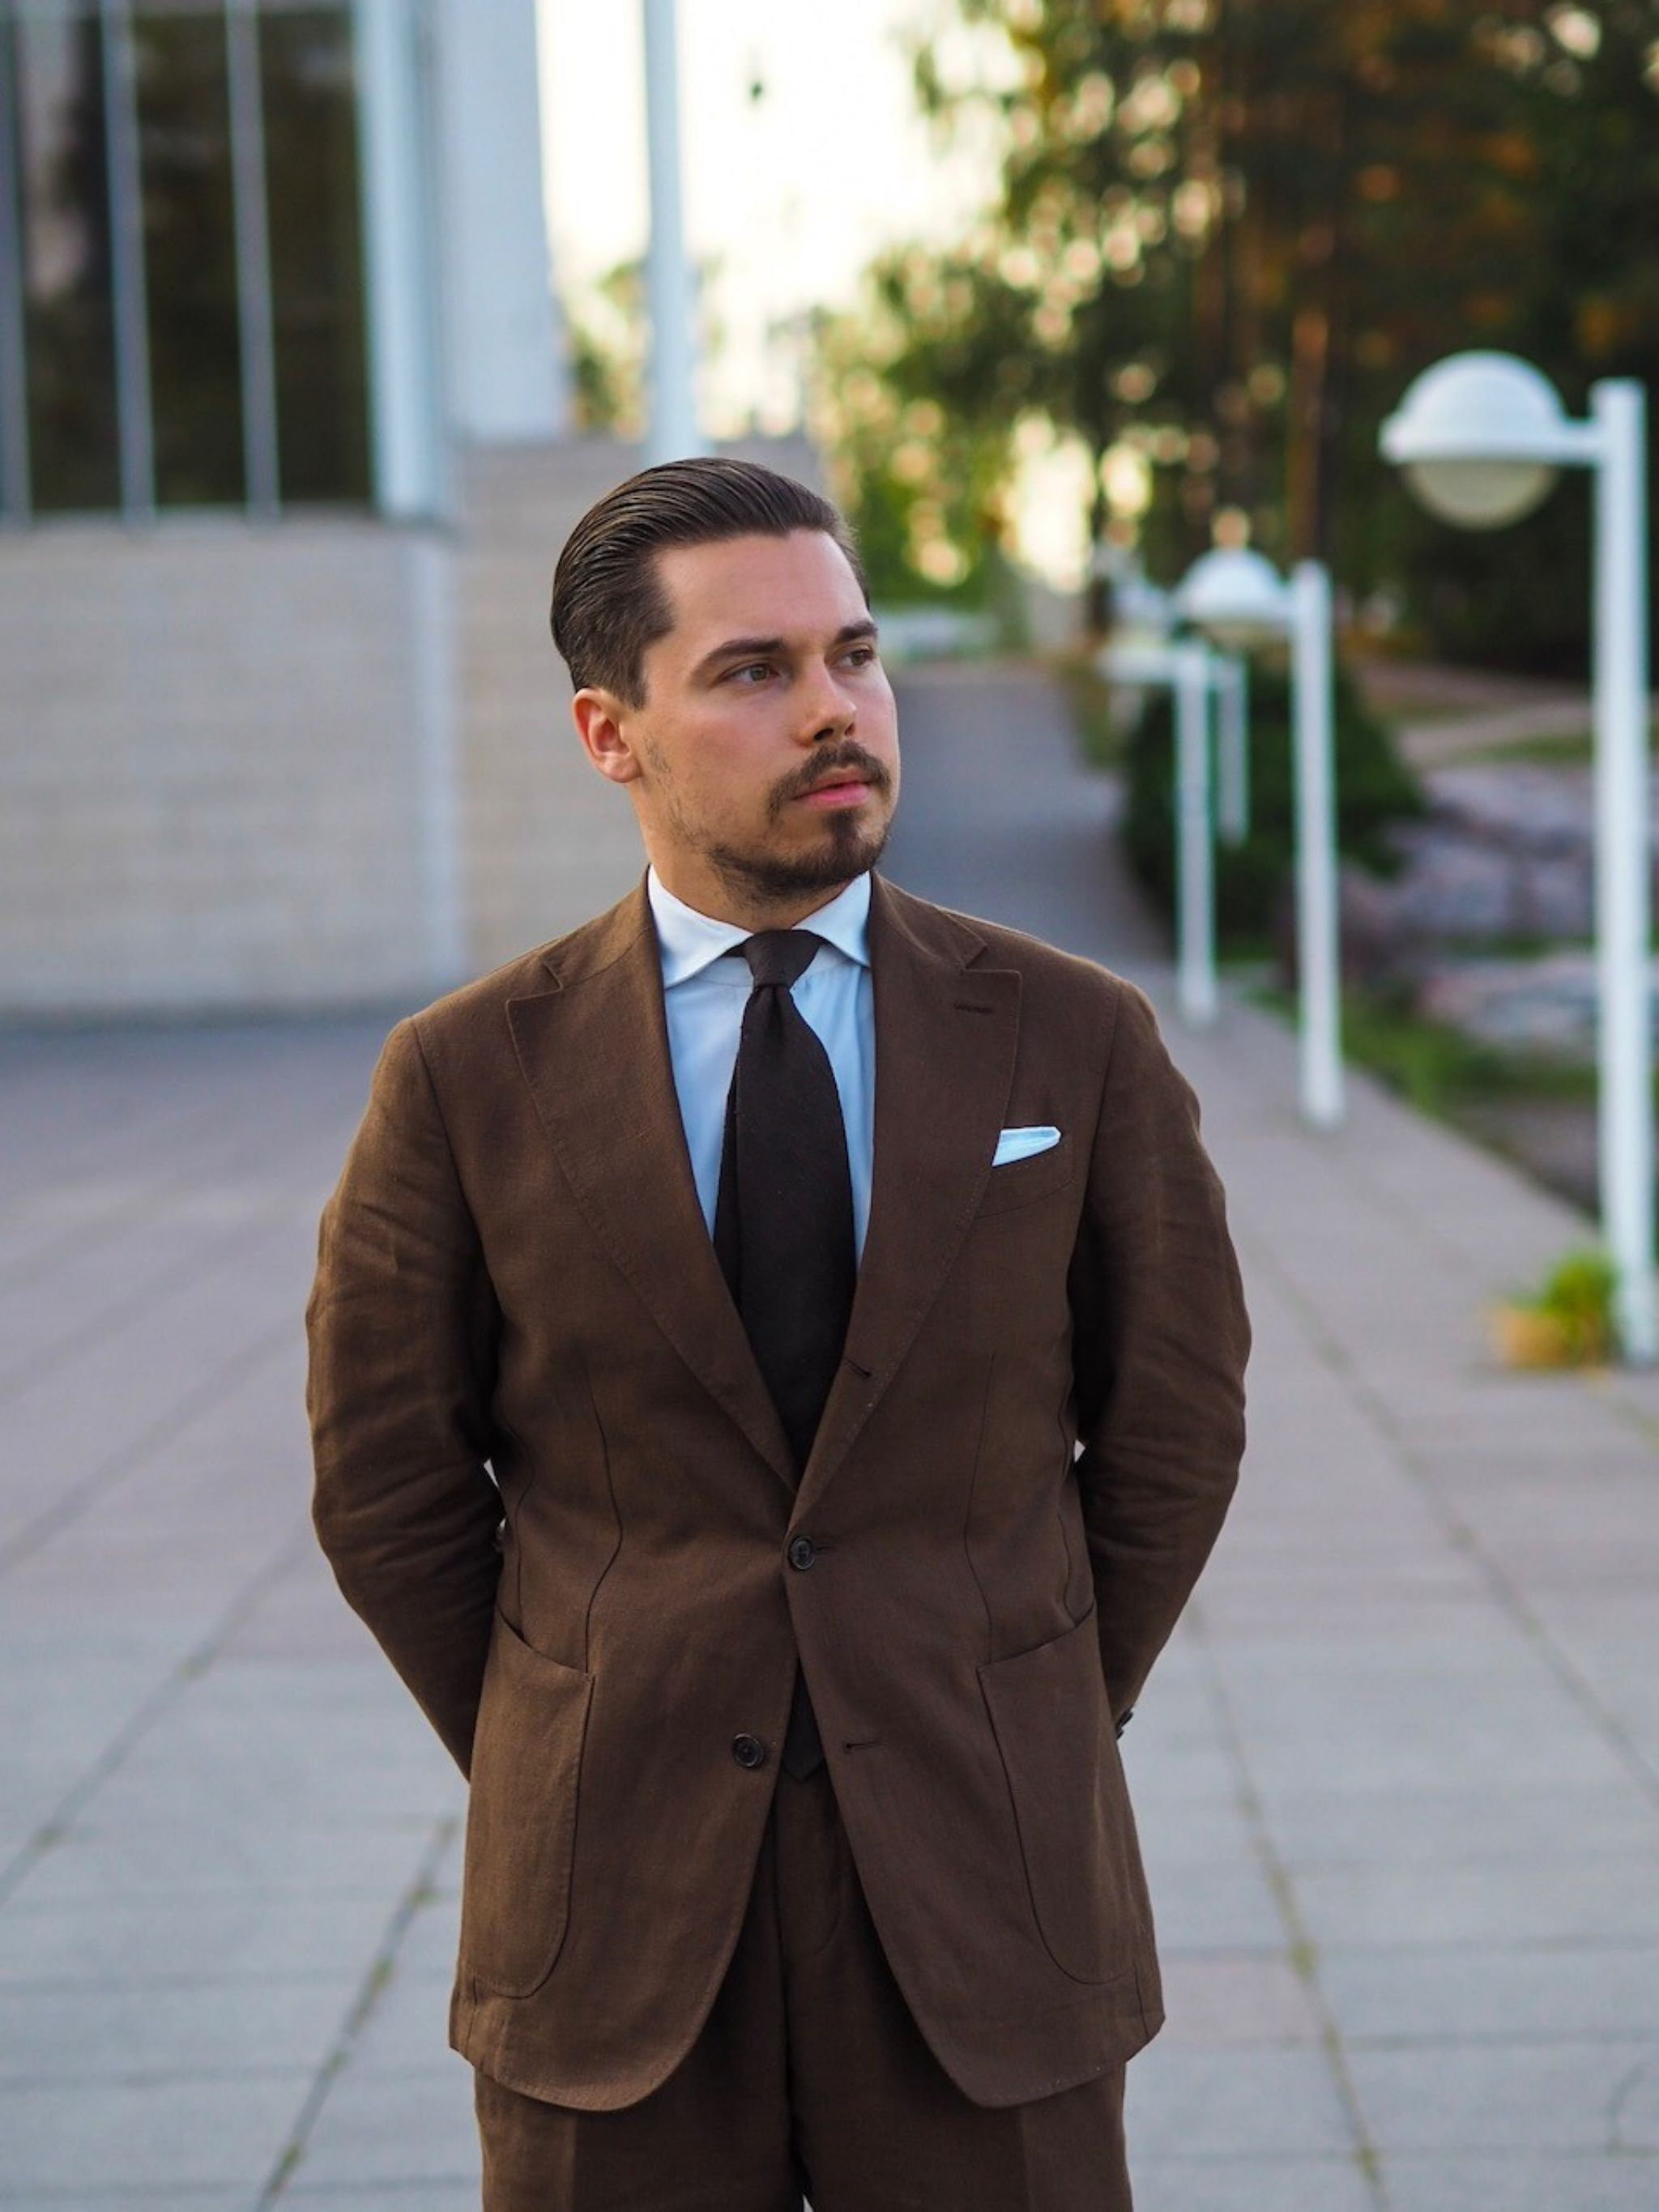 The Brown linen suit for business